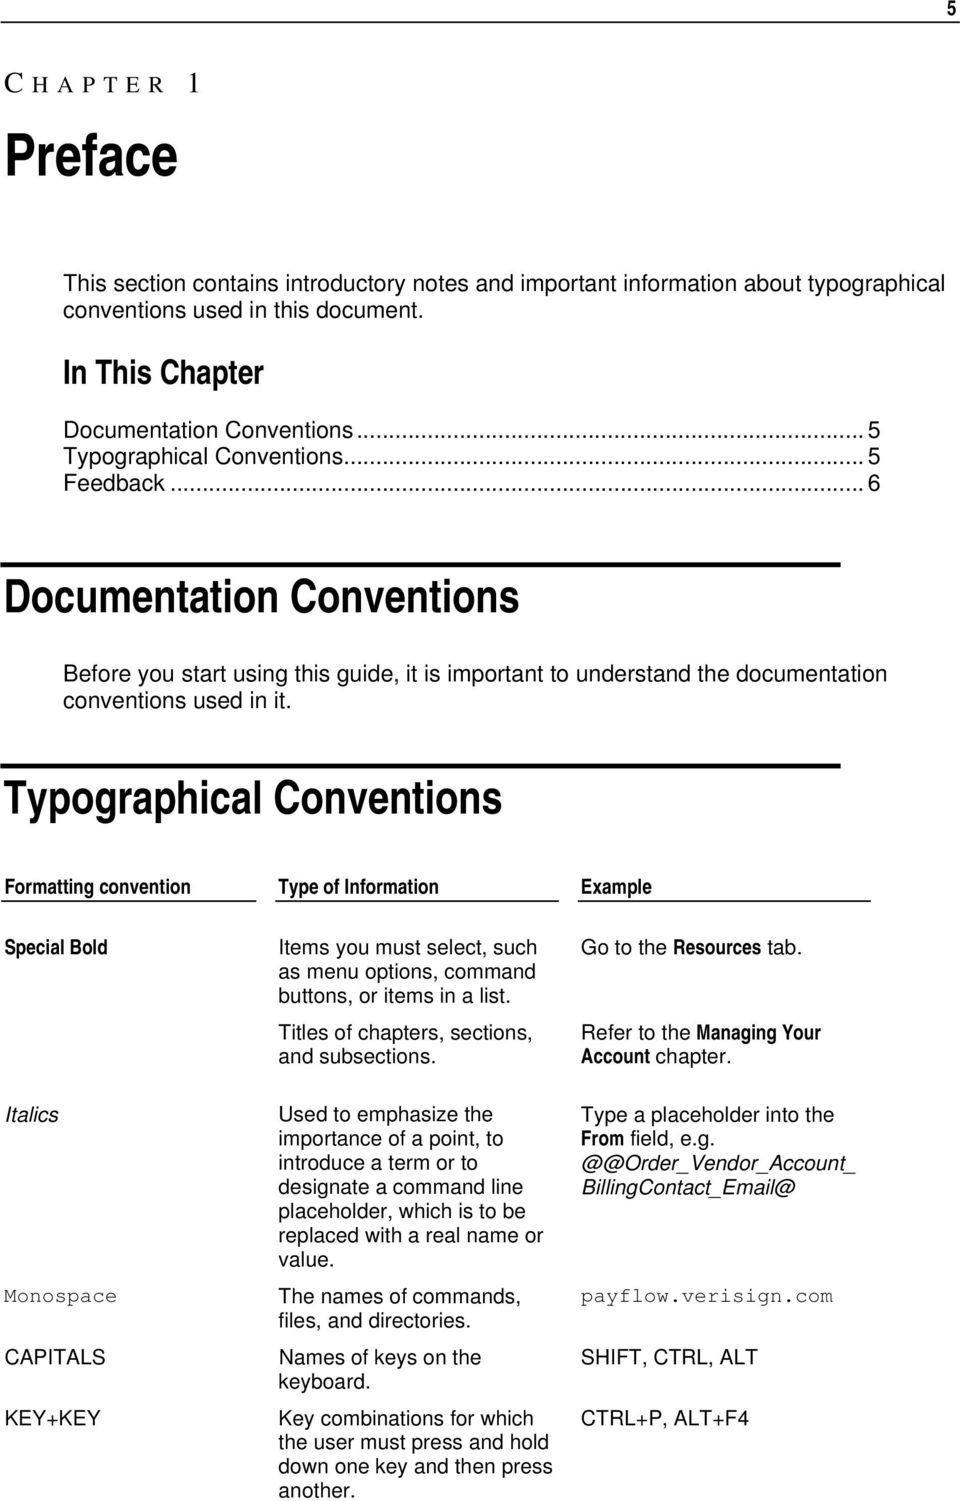 Typographical Conventions Formatting convention Type of Information Example Special Bold Italics Monospace CAPITALS KEY+KEY Items you must select, such as menu options, command buttons, or items in a